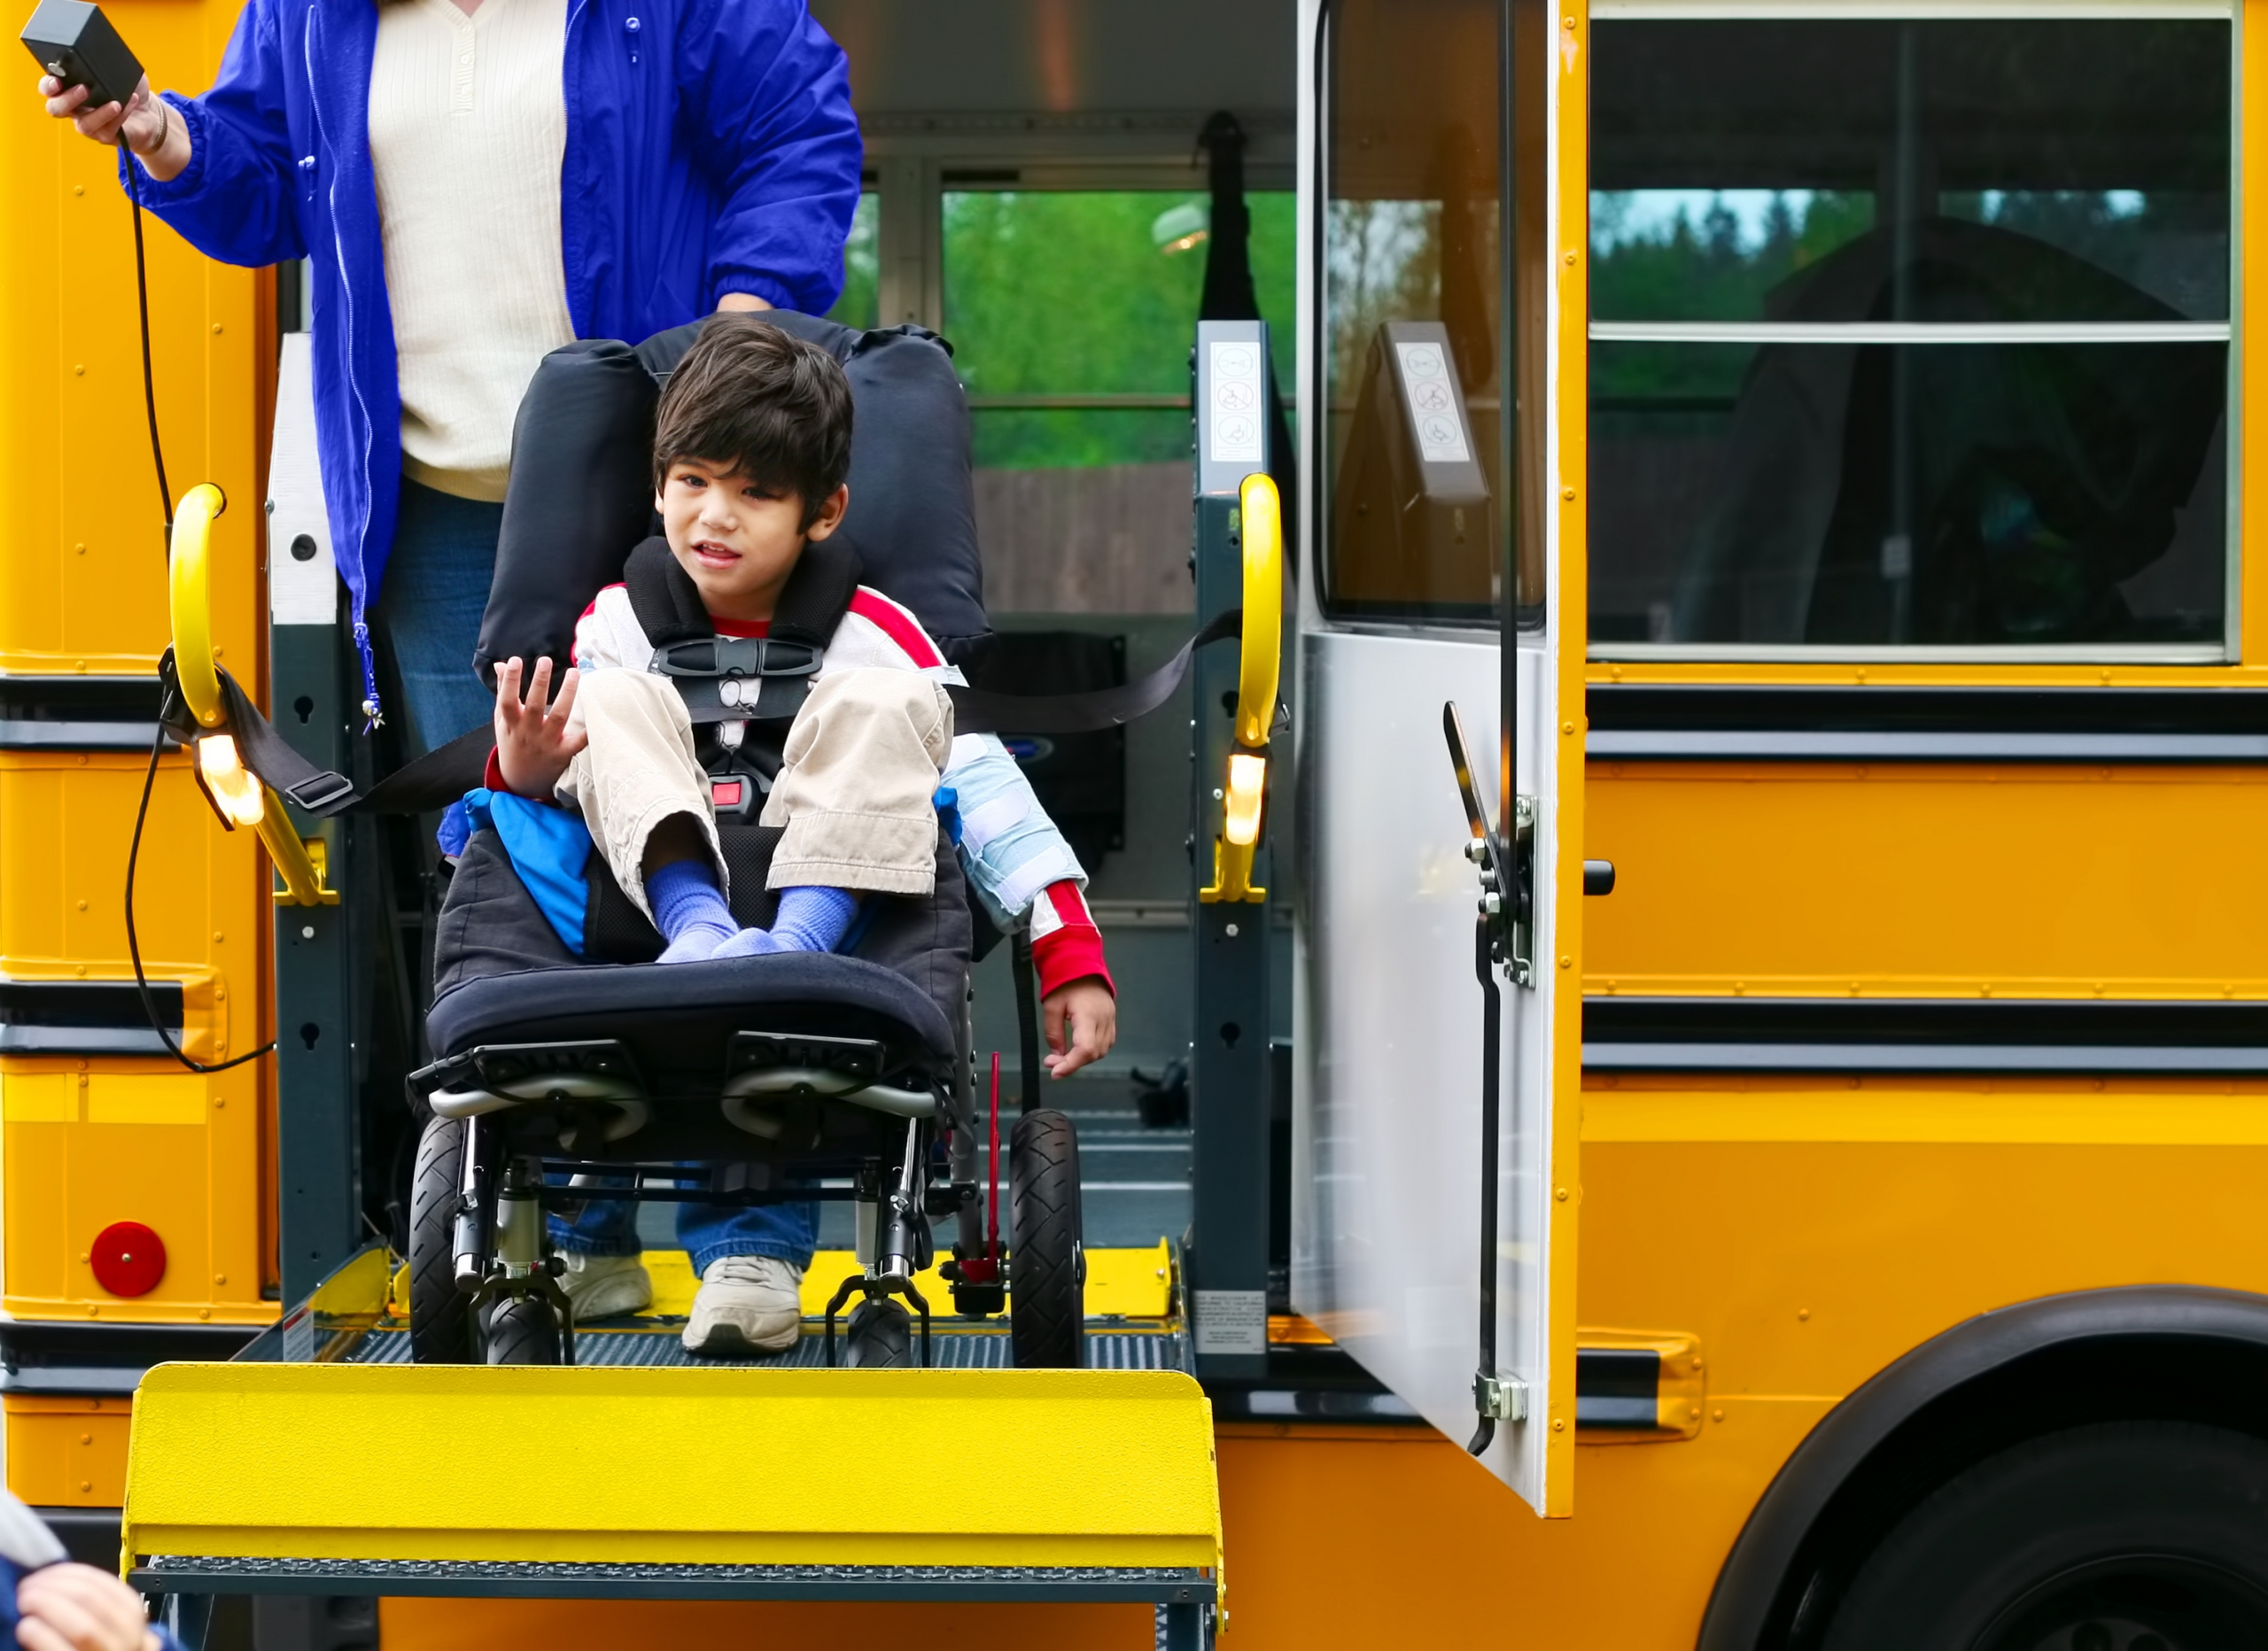 How to Make a Bus Wheelchair Accessible